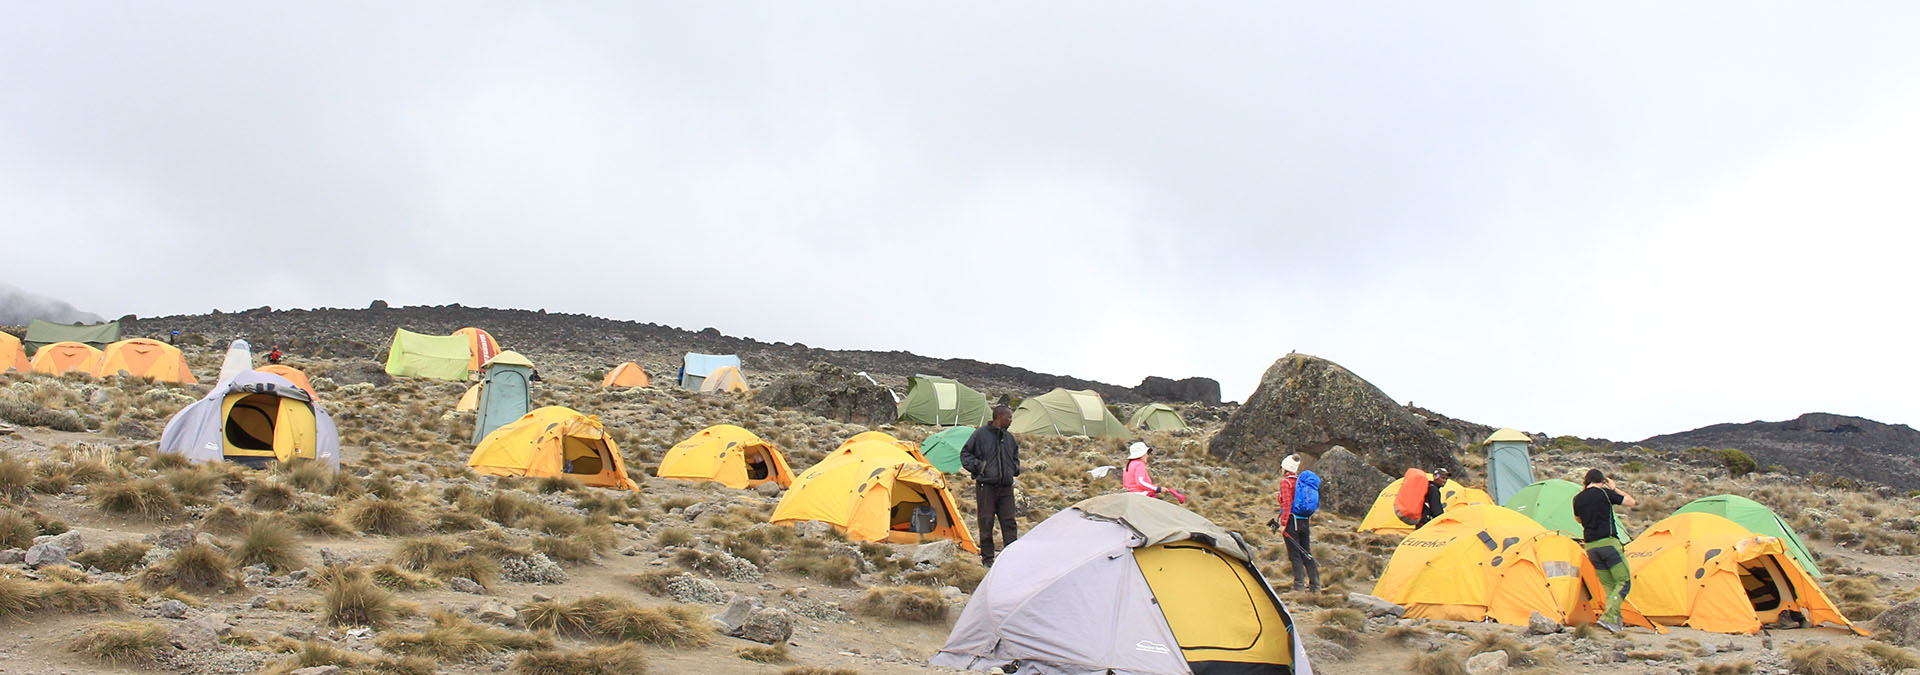 Shira Route, Mount Kilimanjaro